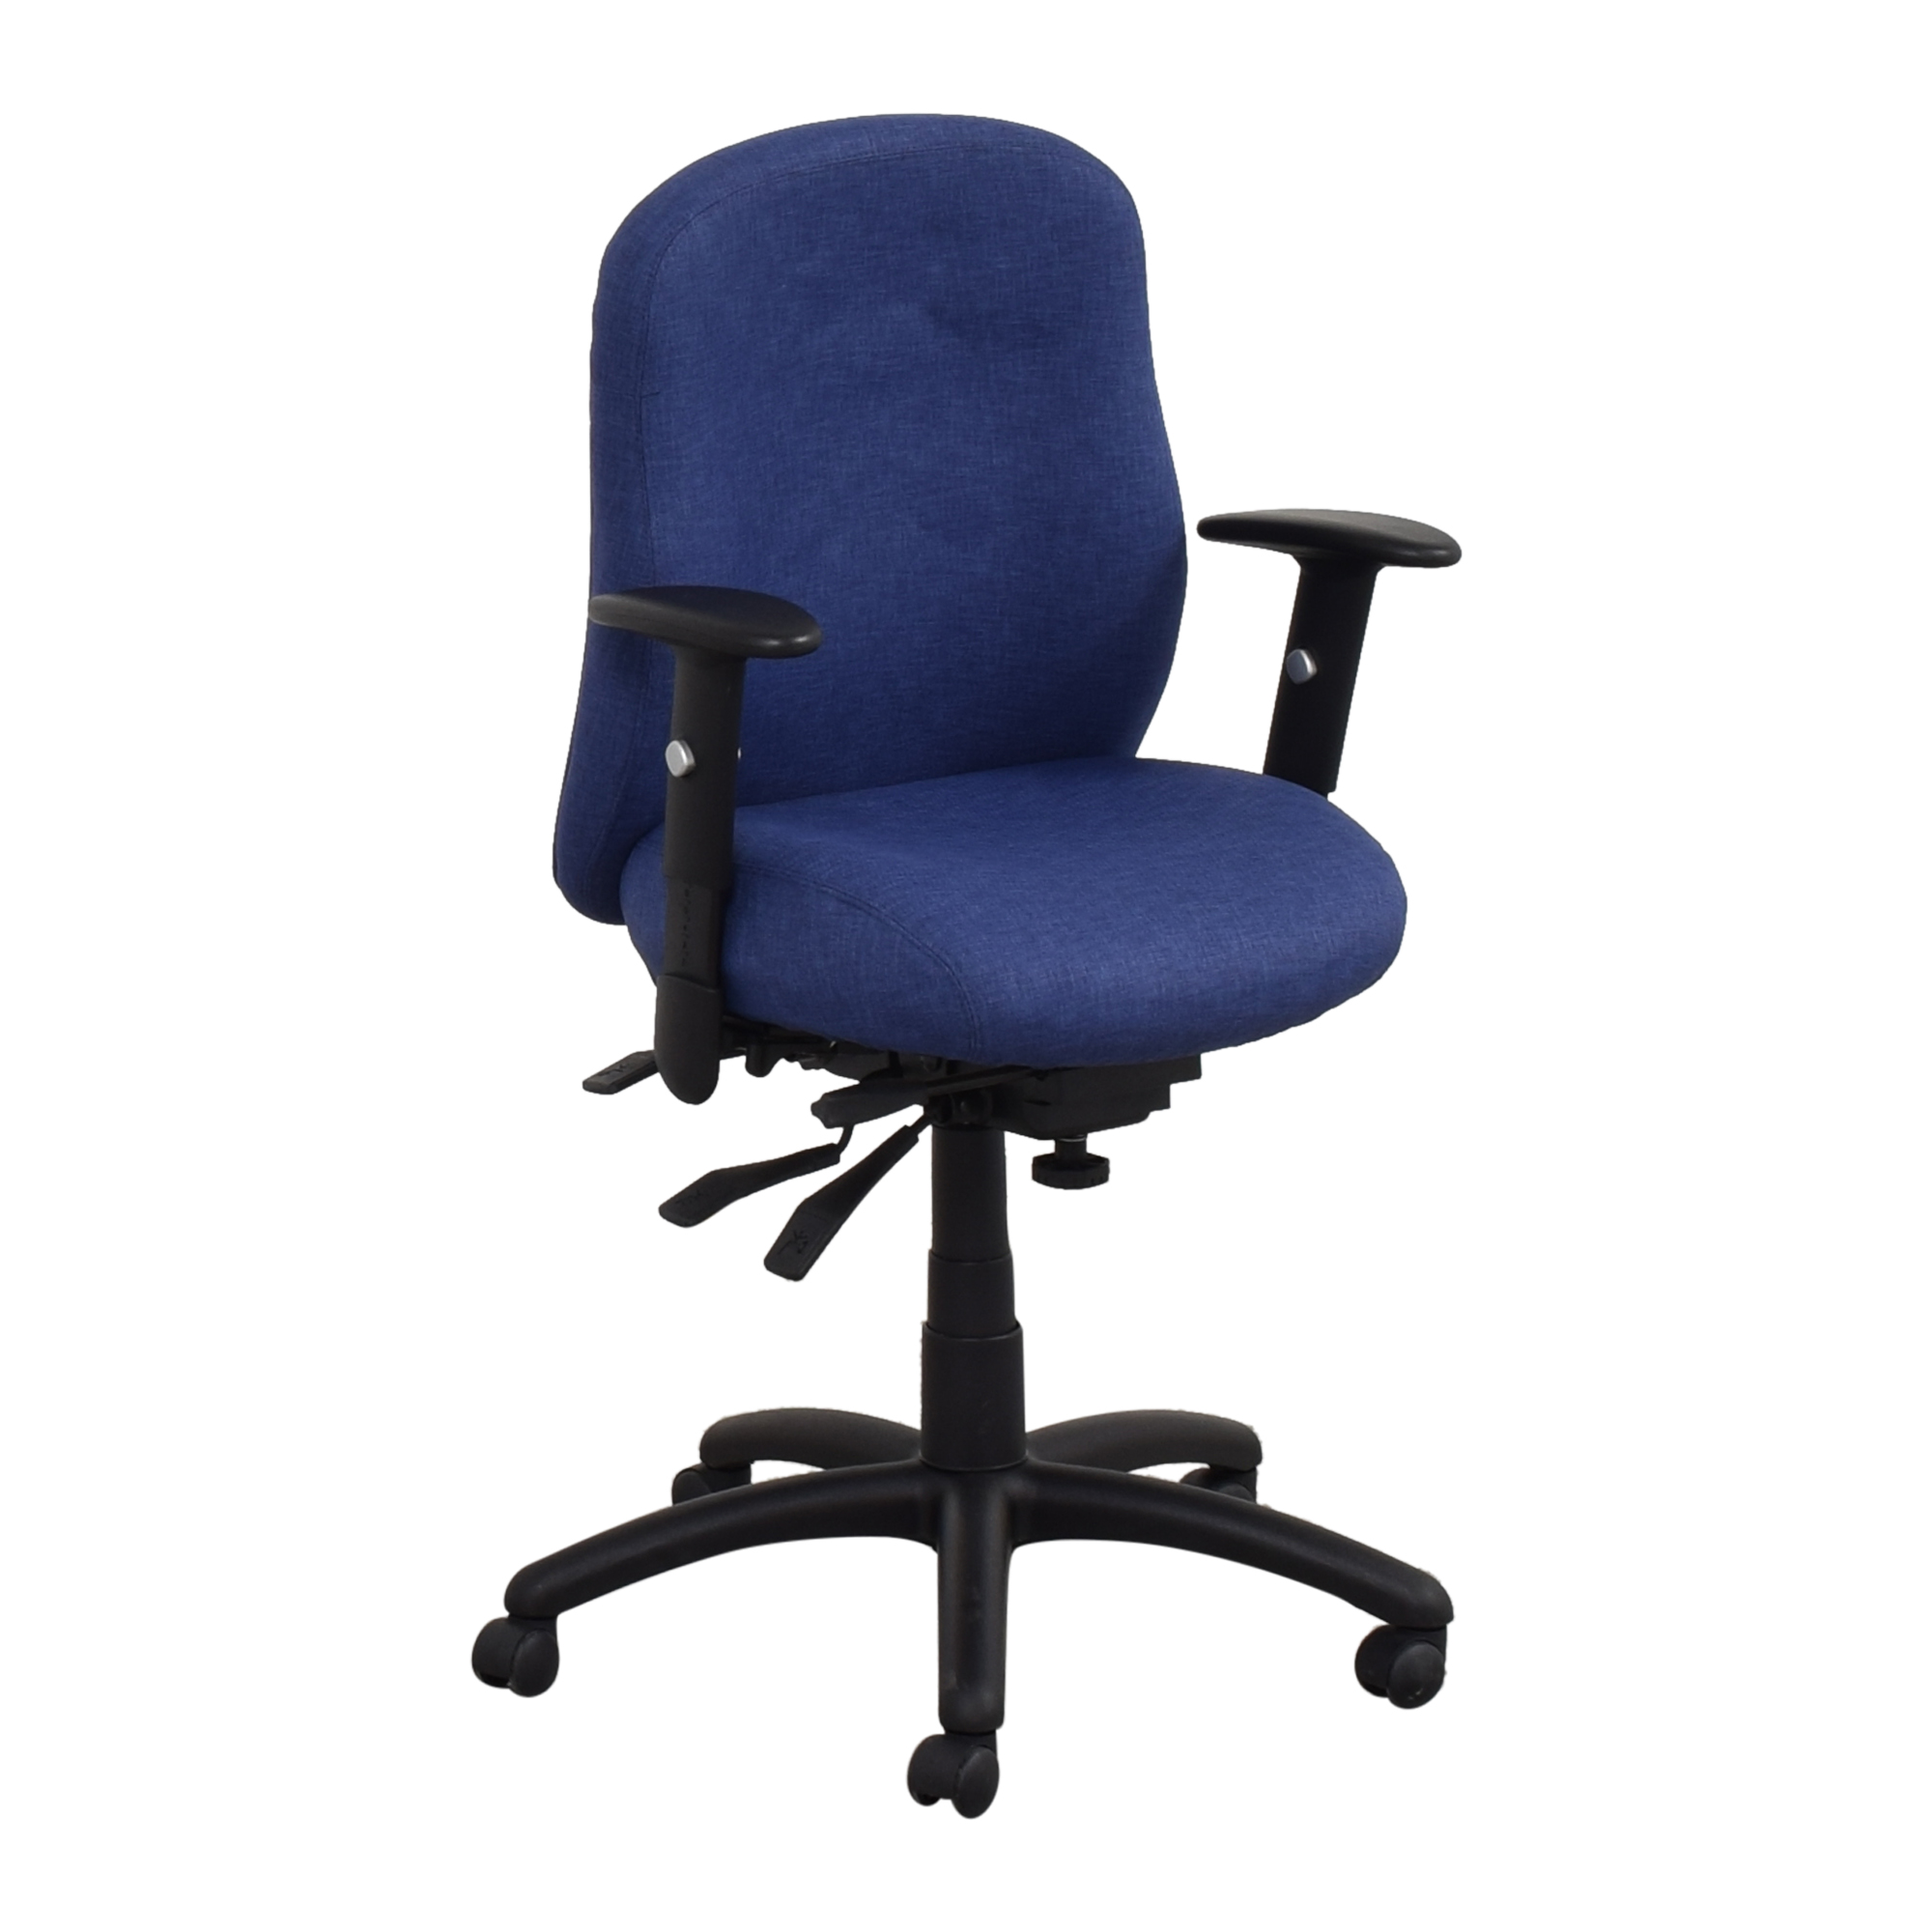 shop Offices to Go Offices to Go Multi-Function Desk Chair online